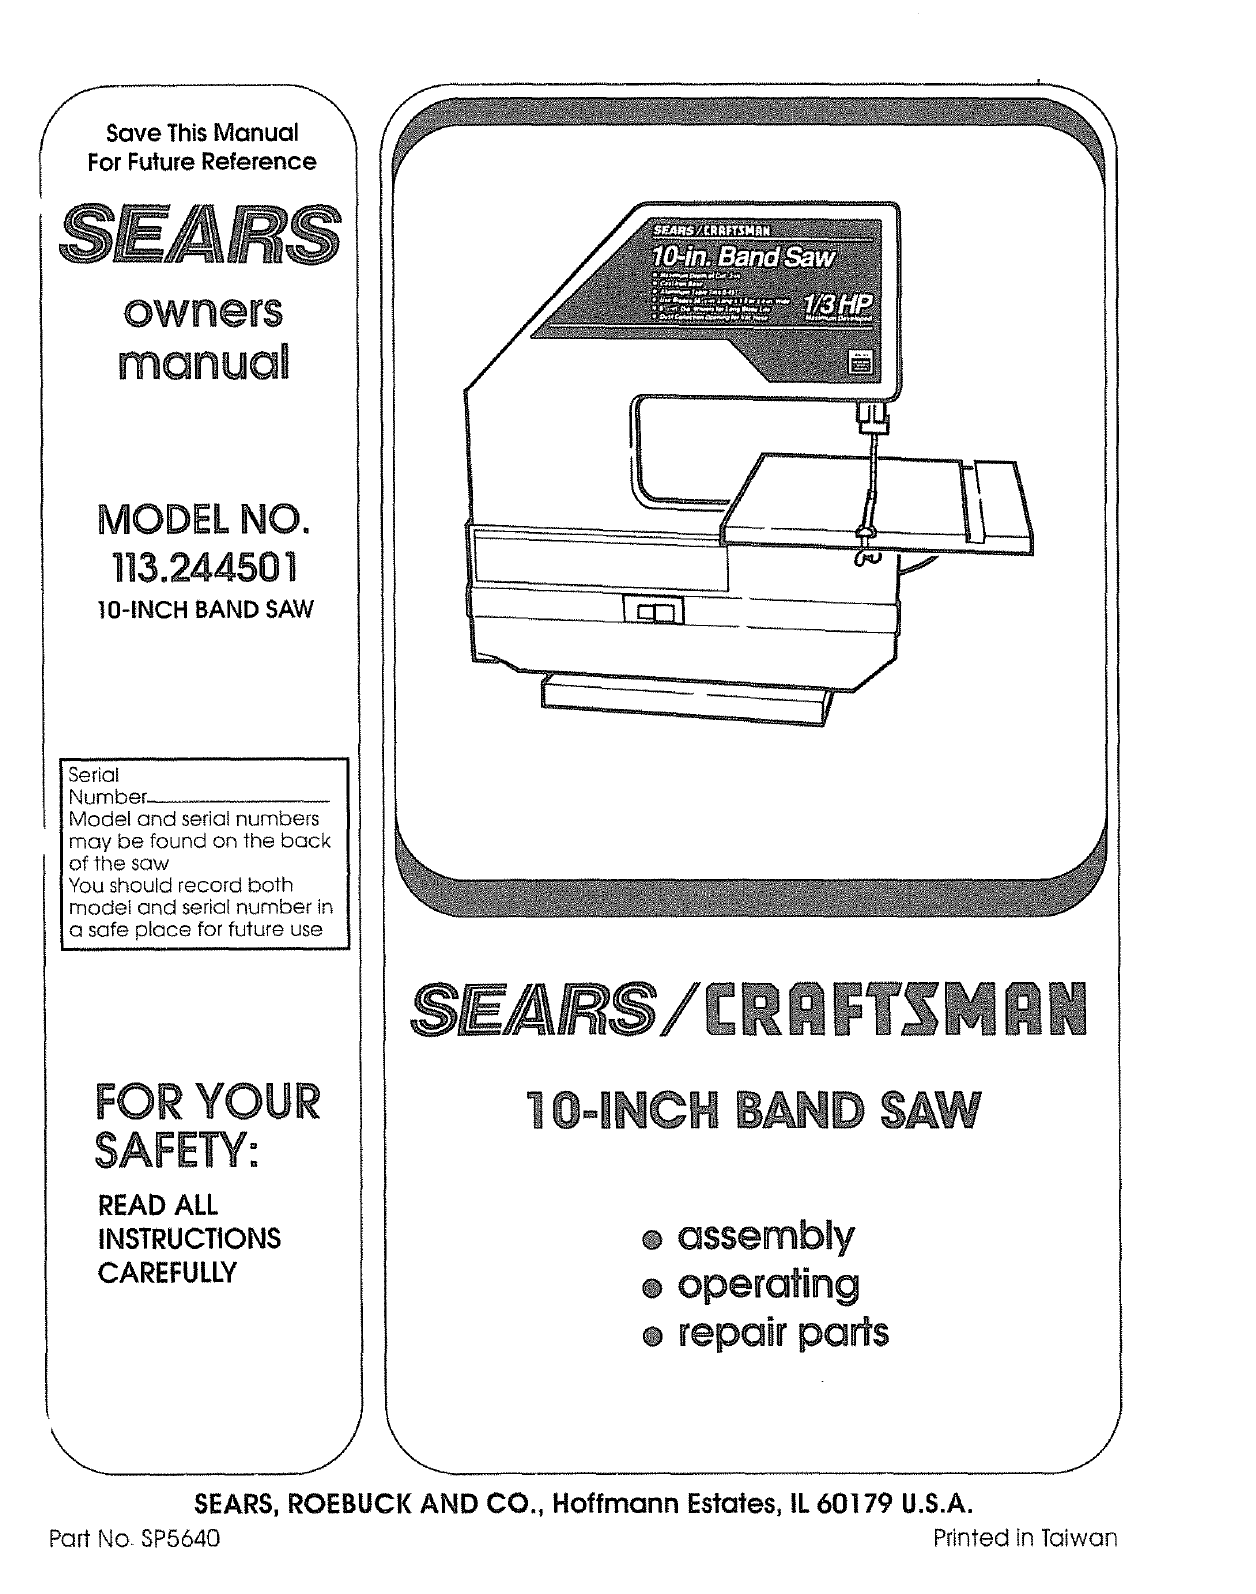 sears saw 113 244501 user guide manualsonline com rh powertool manualsonline com Craftsman Lawn Tractor Manual Craftsman Snow Blower Parts Manuals